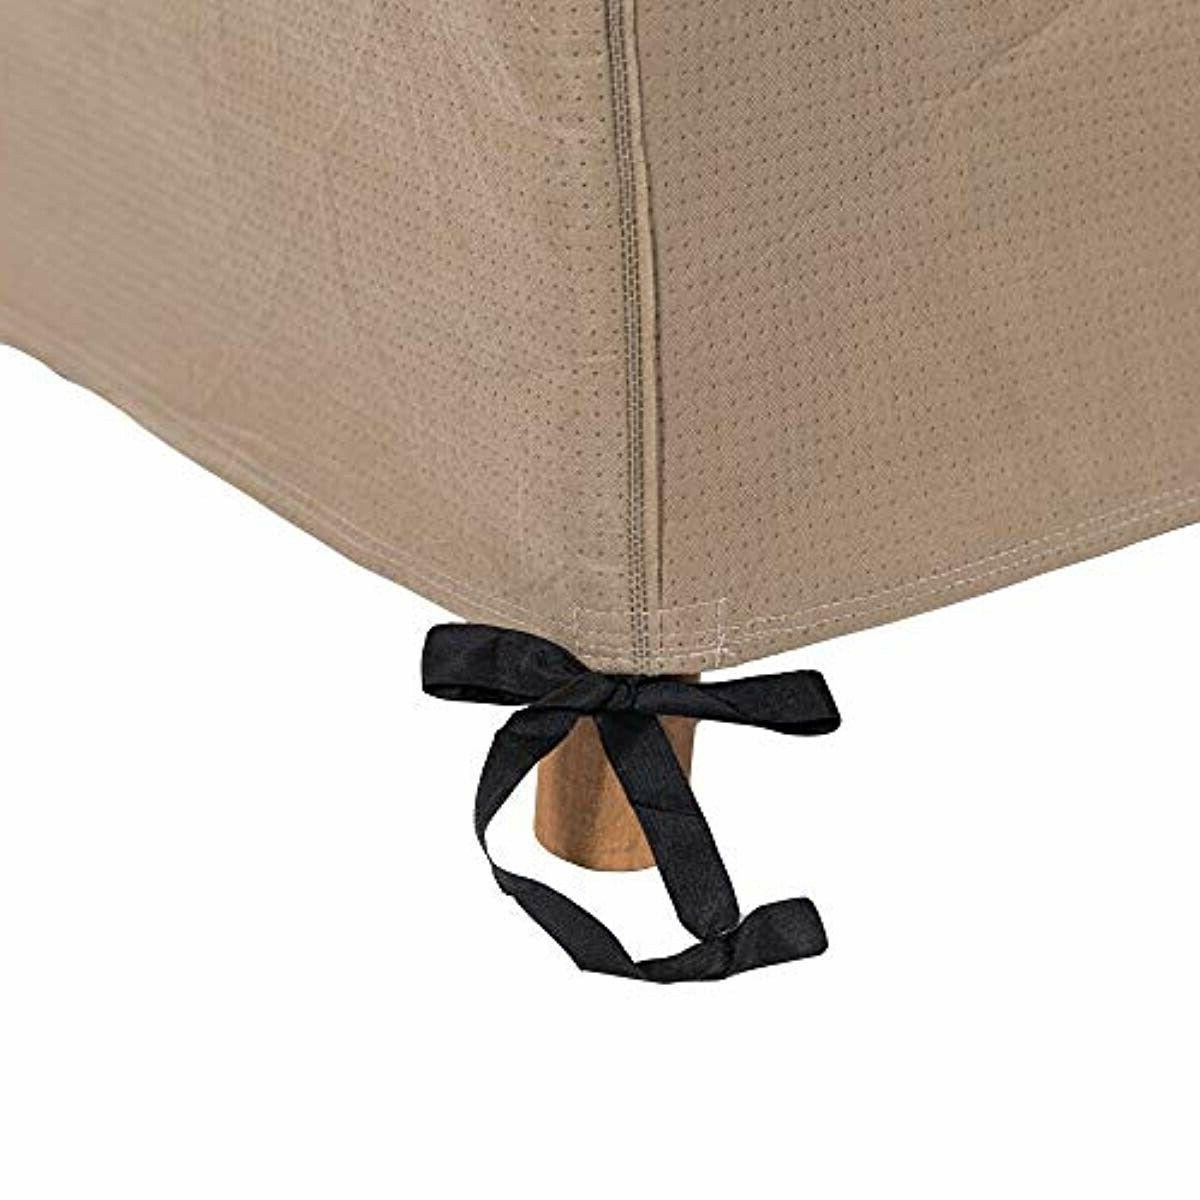 Duck Covers Patio Table Chair